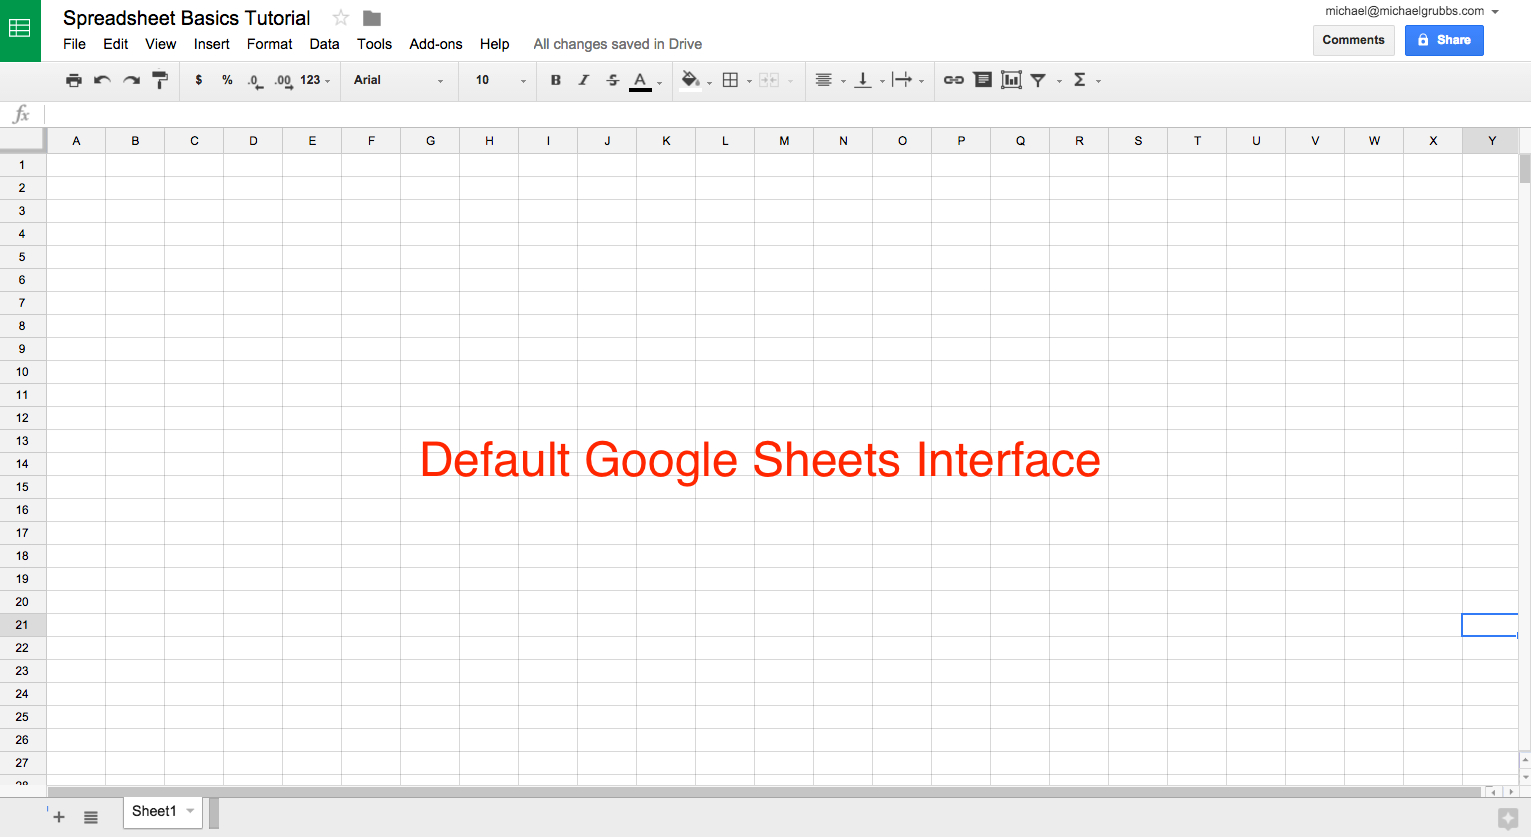 How To Make An Excel Spreadsheet Shared For Editing With